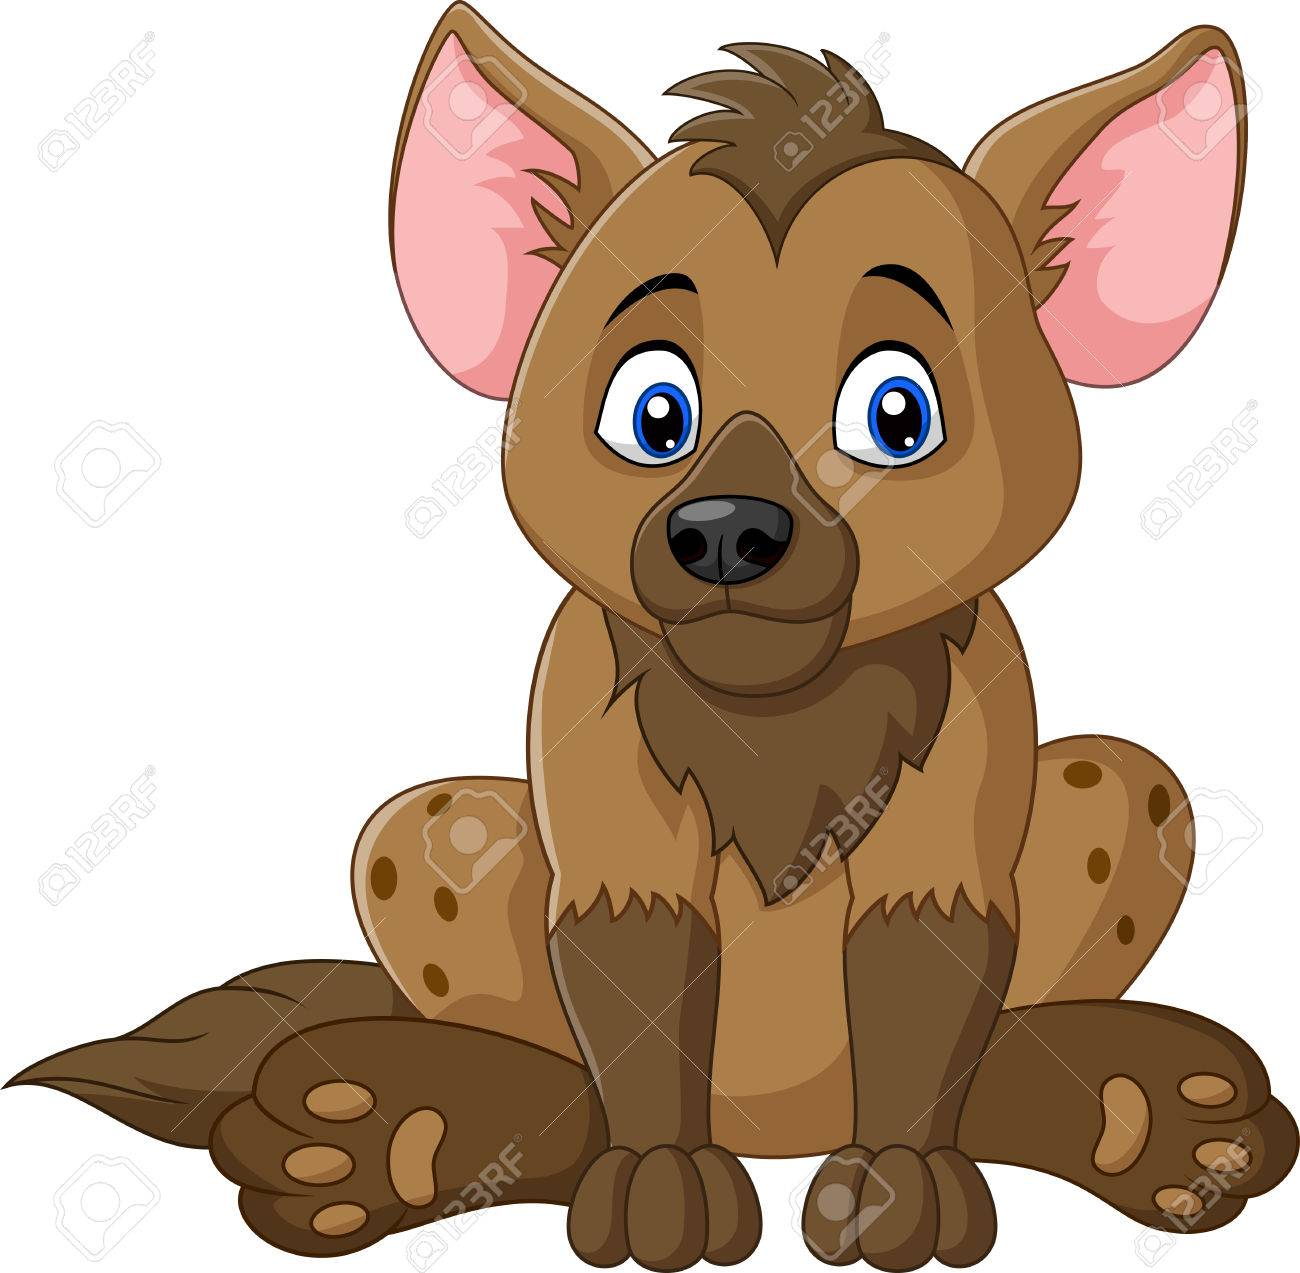 1300x1273 Hyena Cartoon Desktop Backgrounds